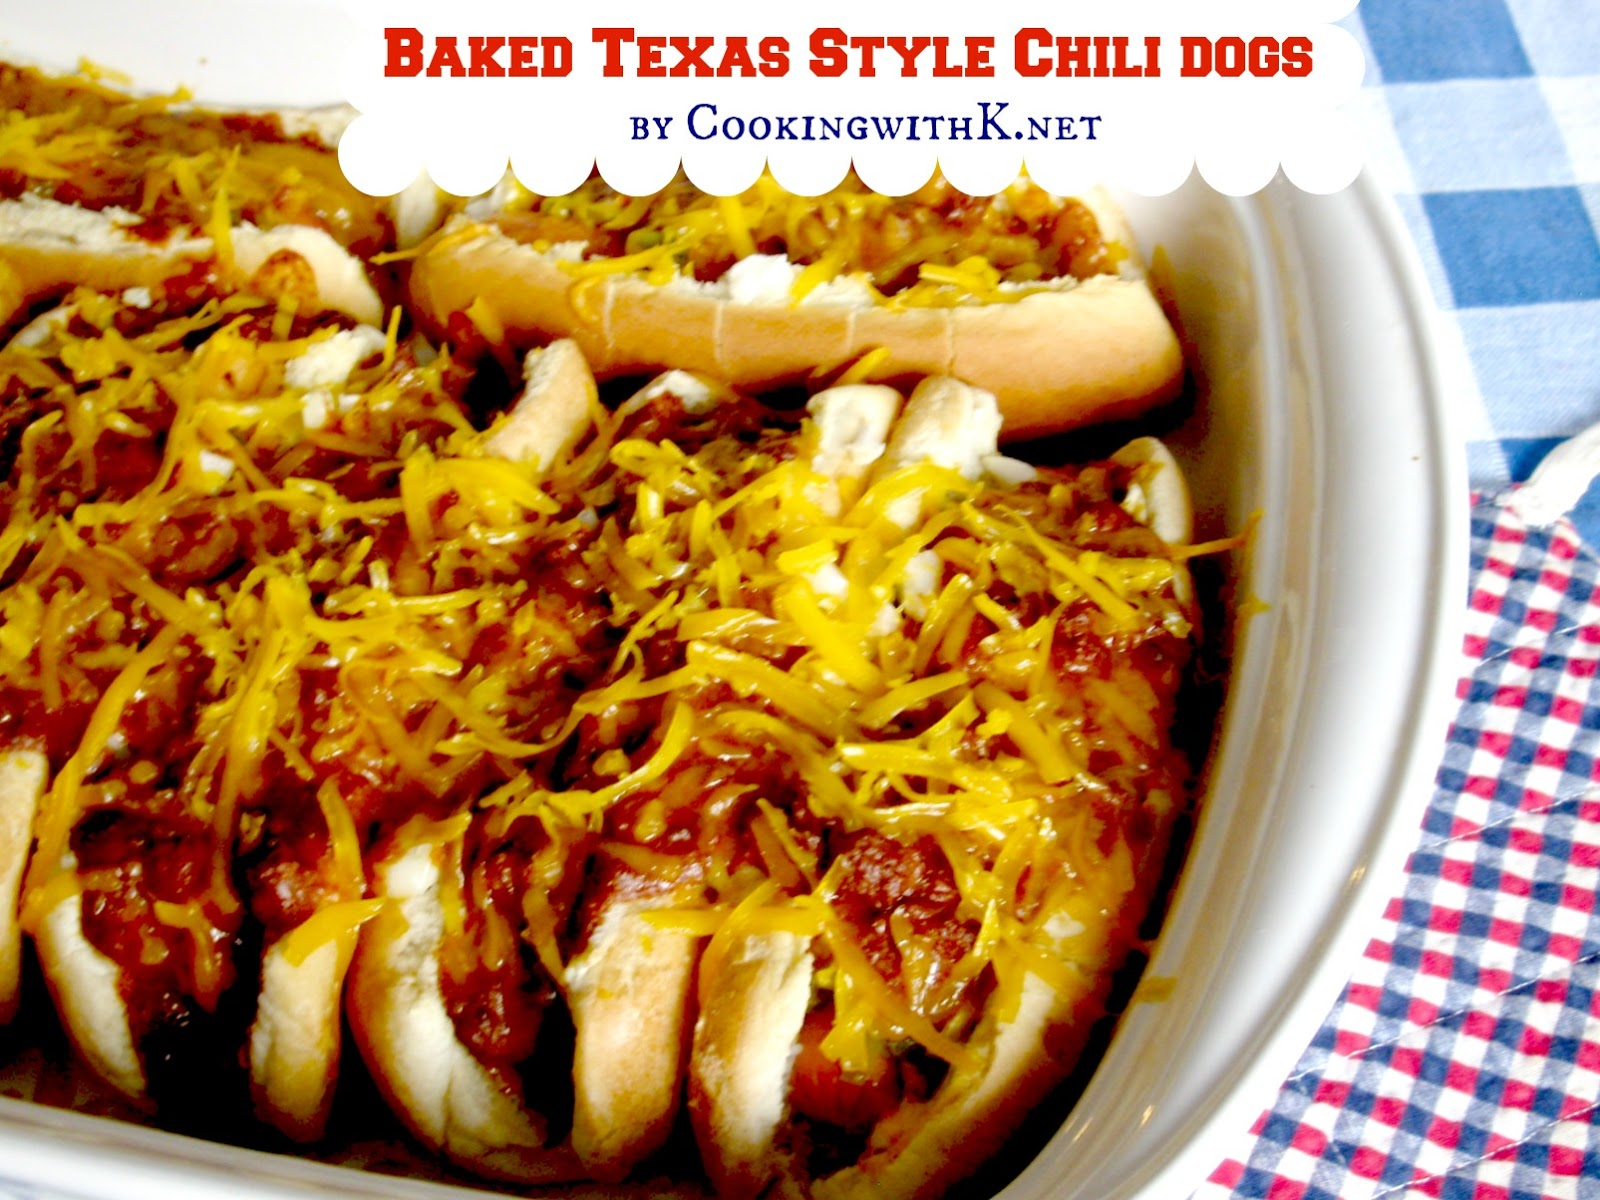 Baked Texas Style Chili Dogs